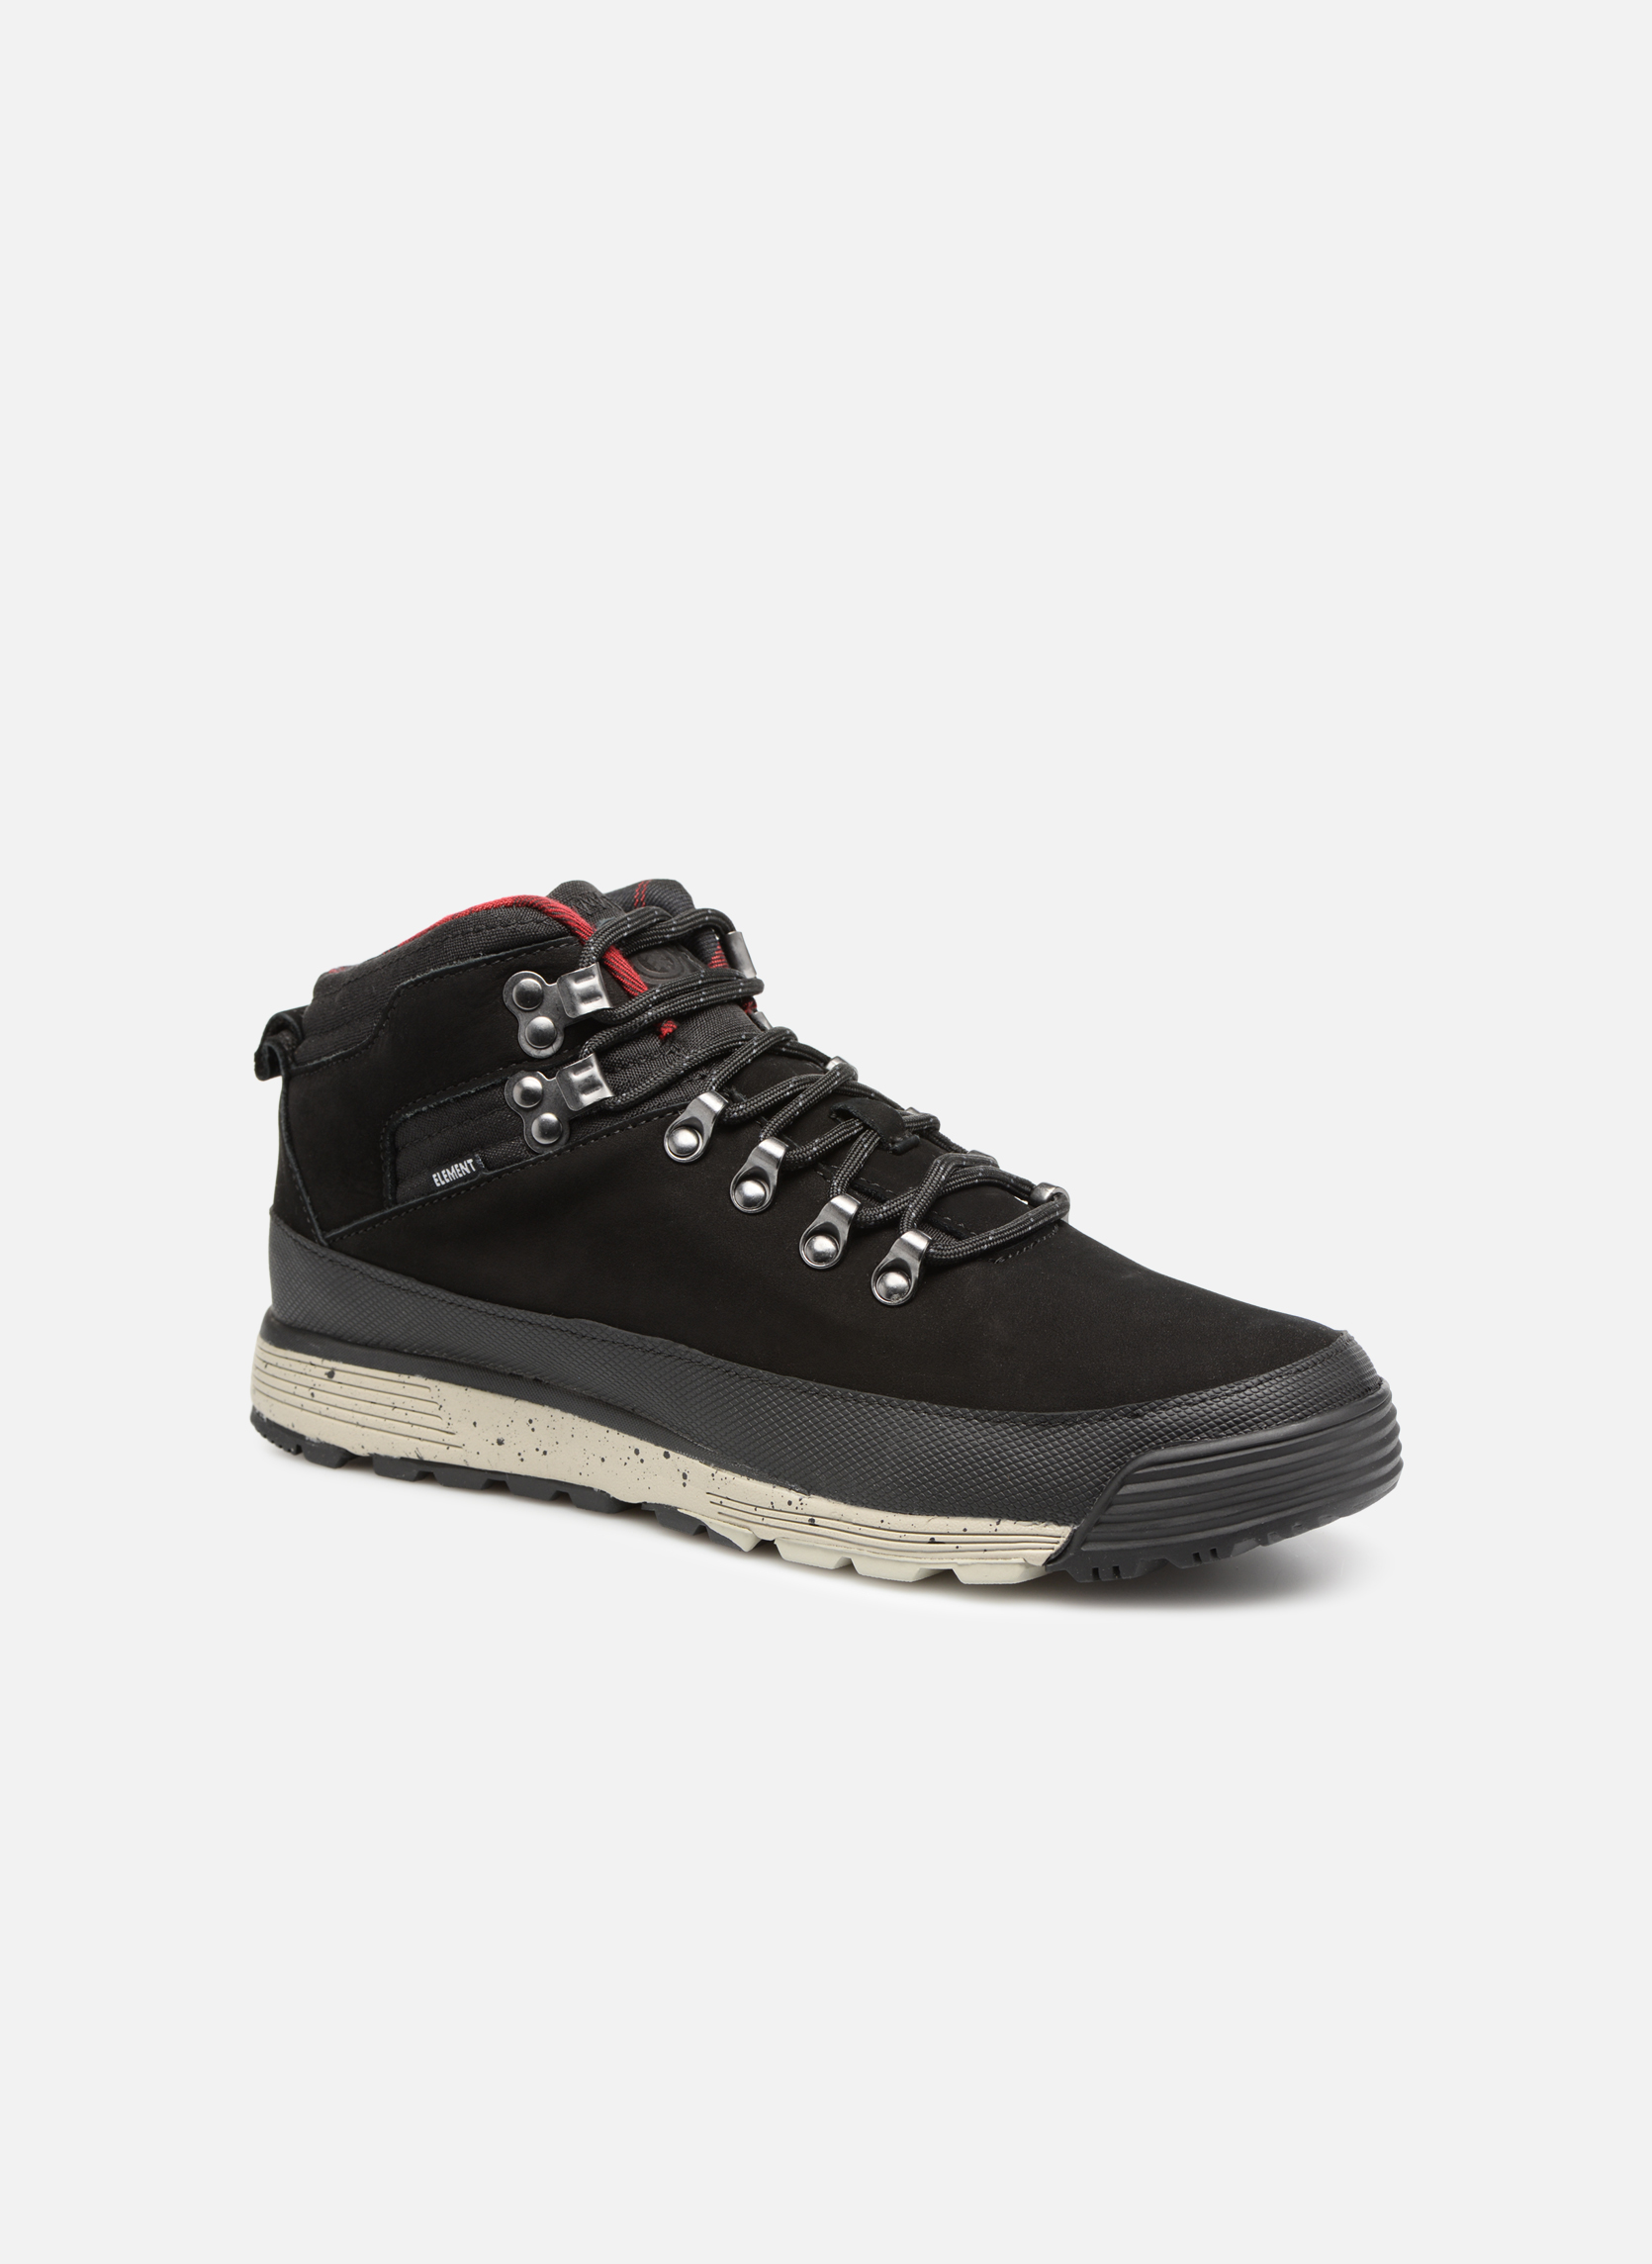 Chaussures à lacets Homme Donnelly